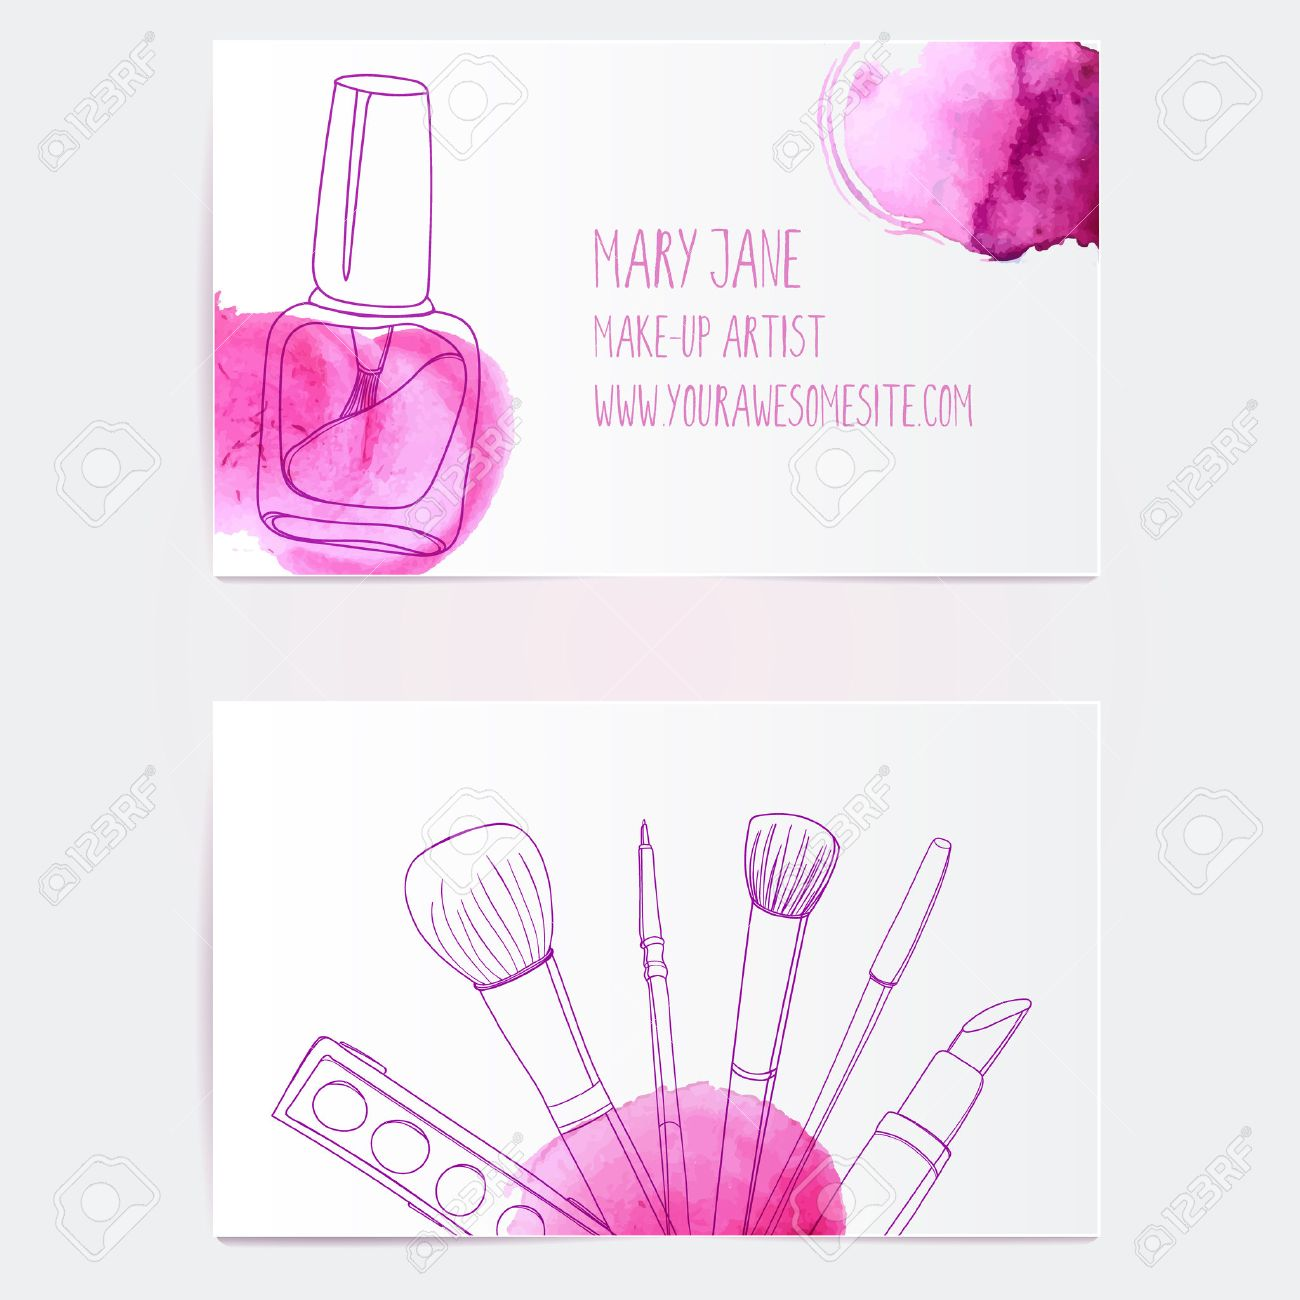 Make up artist business card template vector layout with hand make up artist business card template vector layout with hand drawn illustrations of nail polish magicingreecefo Image collections